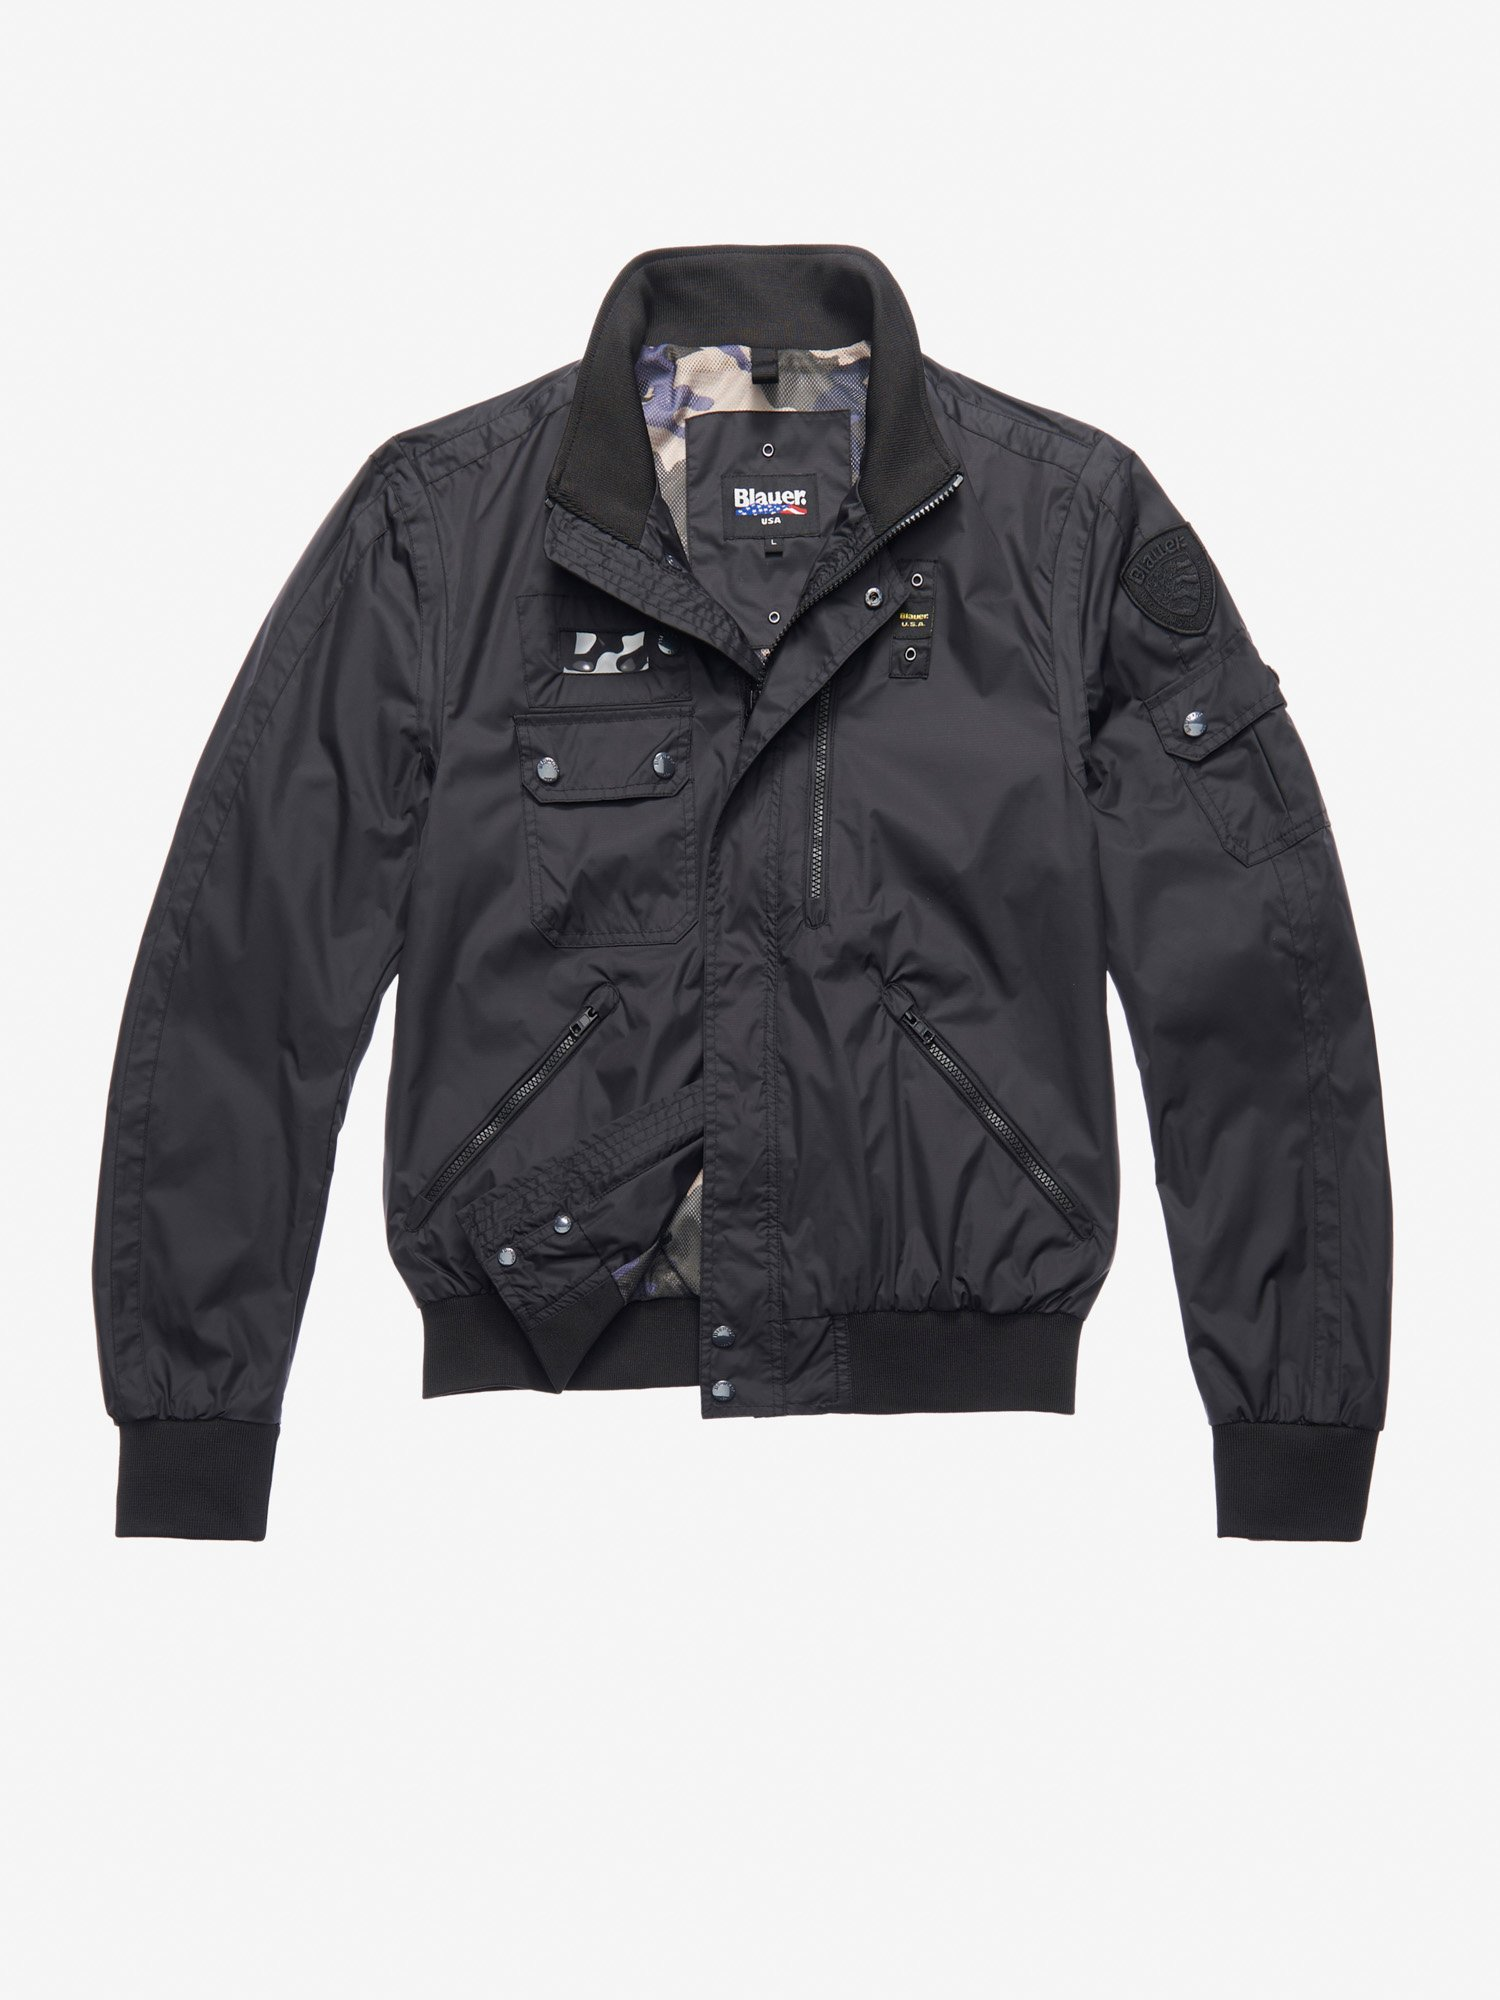 CLARK MULTIPOCKET BOMBER-STYLE JACKET - Blauer